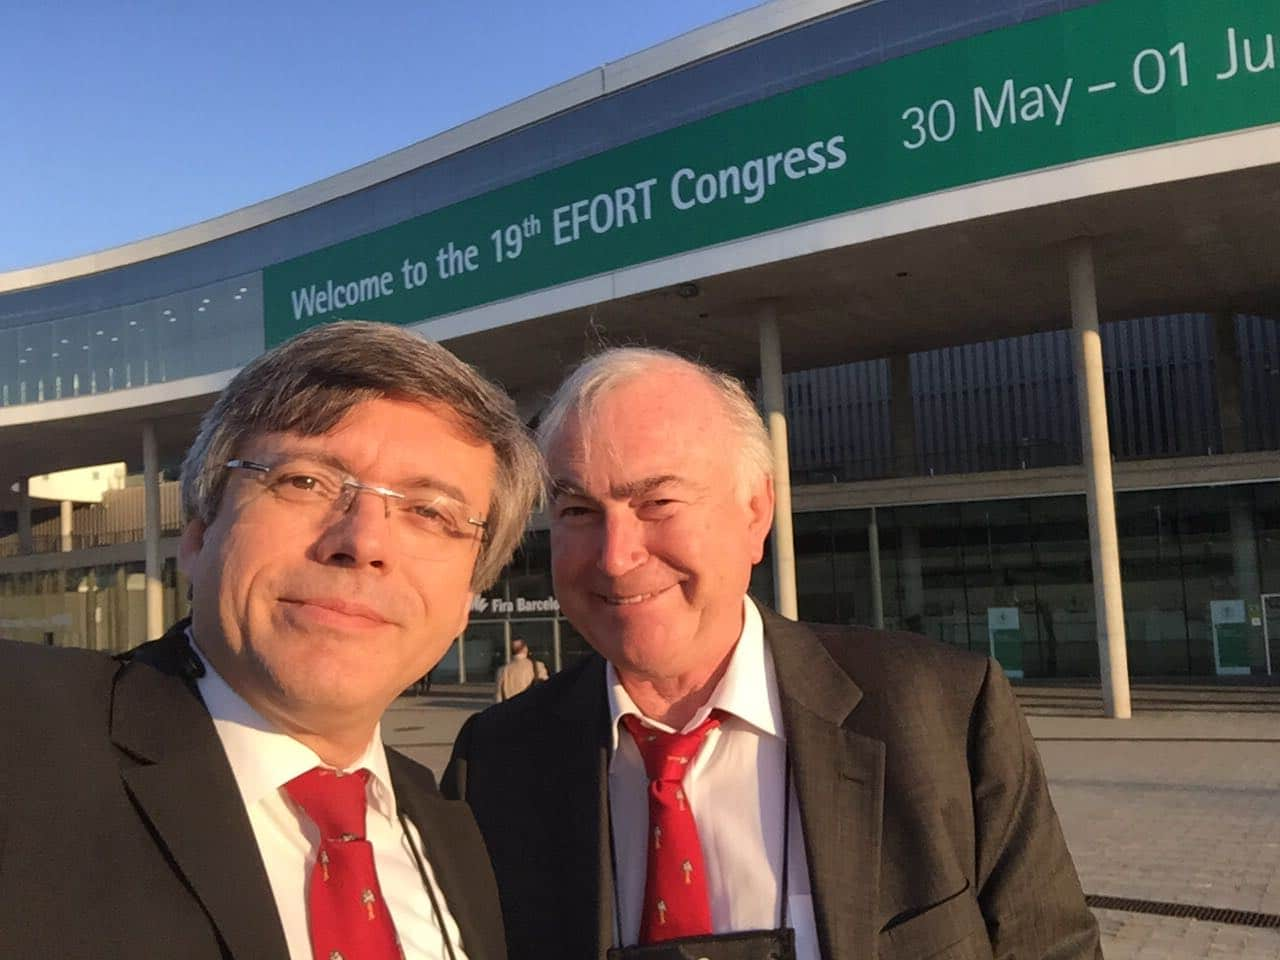 Professor Neyret at the 19th EFORT Congress in Barcelona - Latilini cc33dabae6d